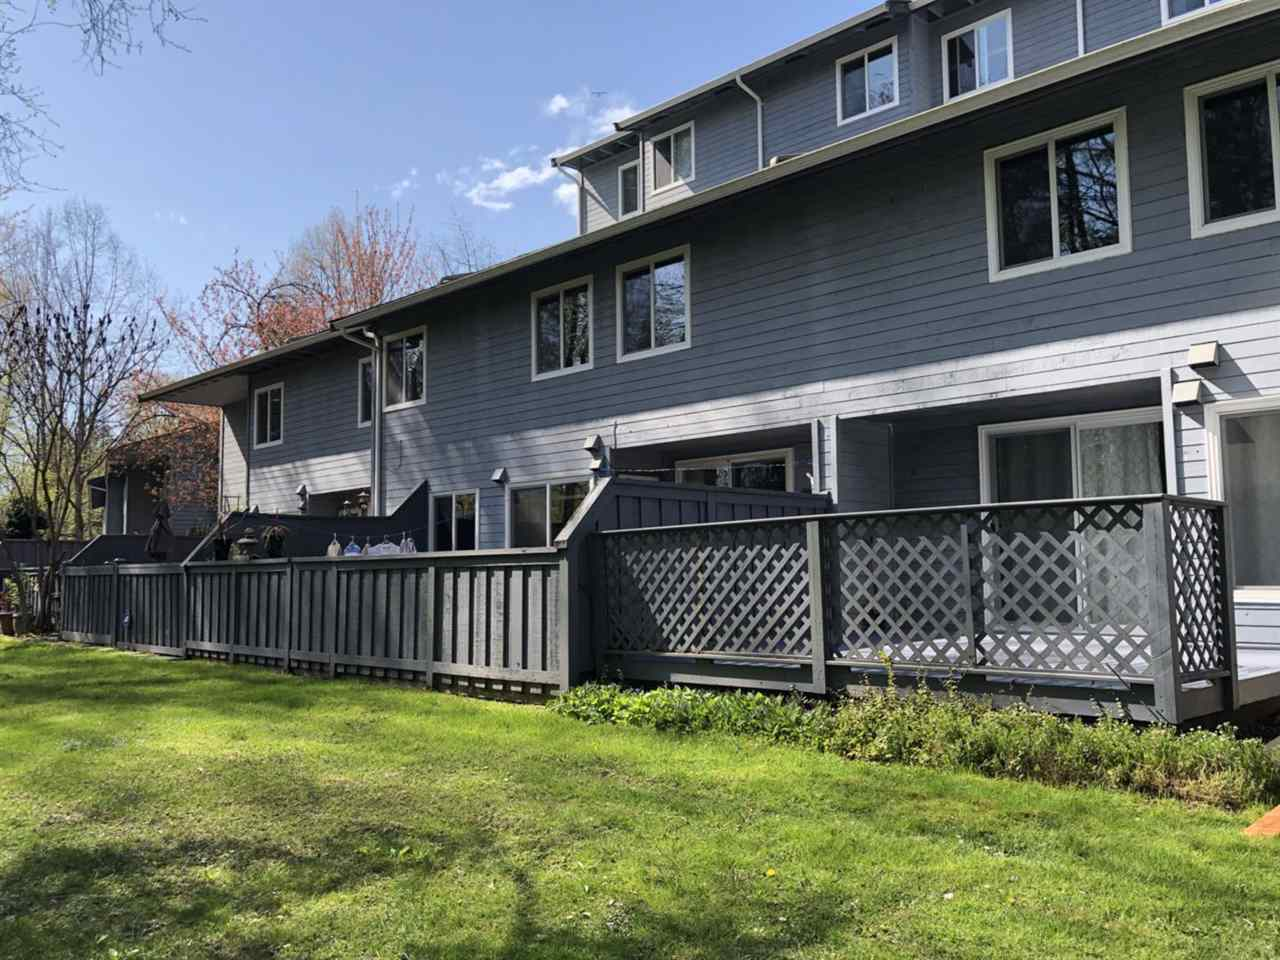 8276-amberwood-place-forest-hills-bn-burnaby-north-14 at 8276 Amberwood Place, Forest Hills BN, Burnaby North